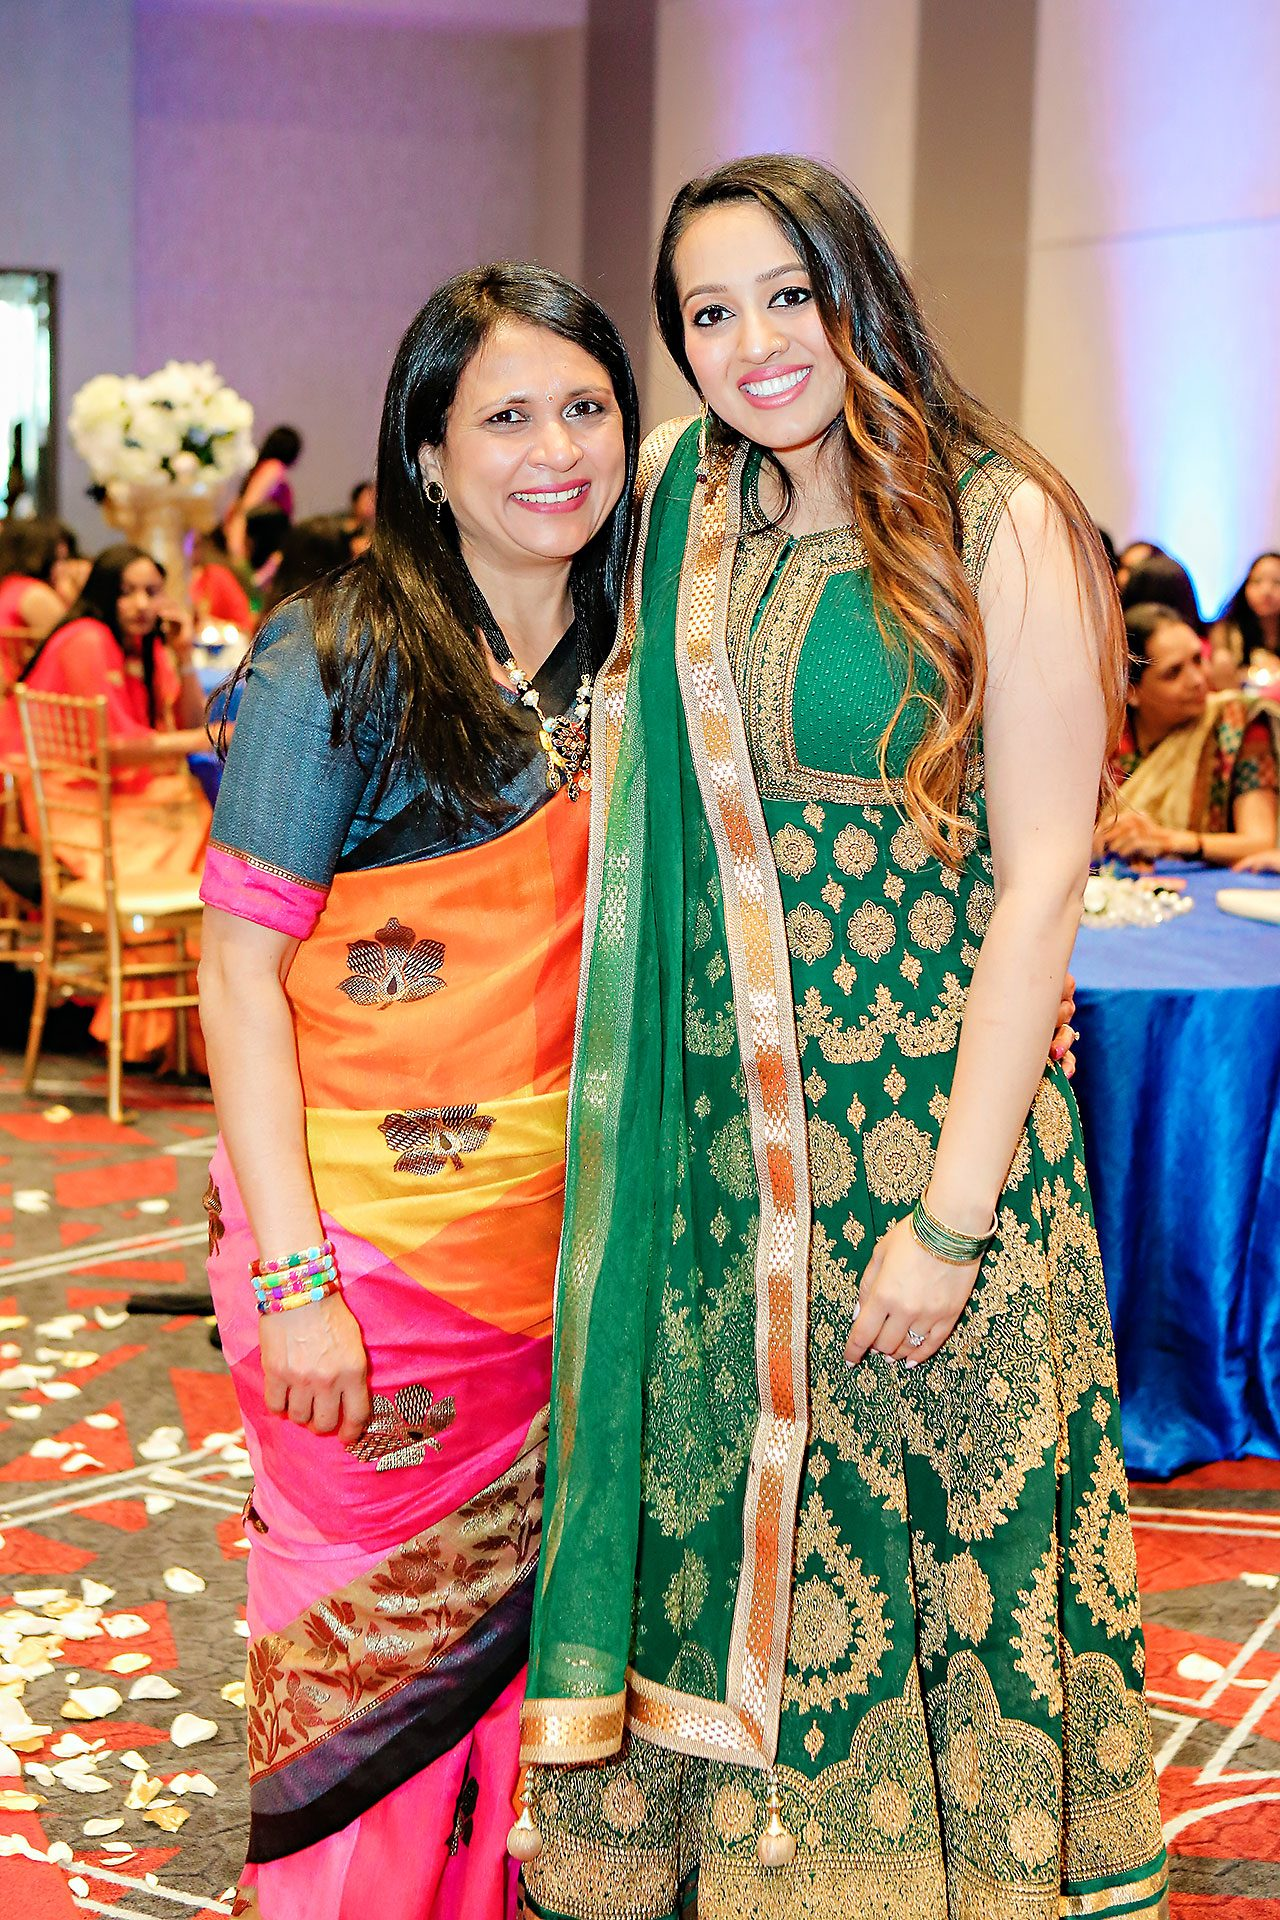 Neil Ganesh Pooja Embassy Suites Conference Center Noblesville 178